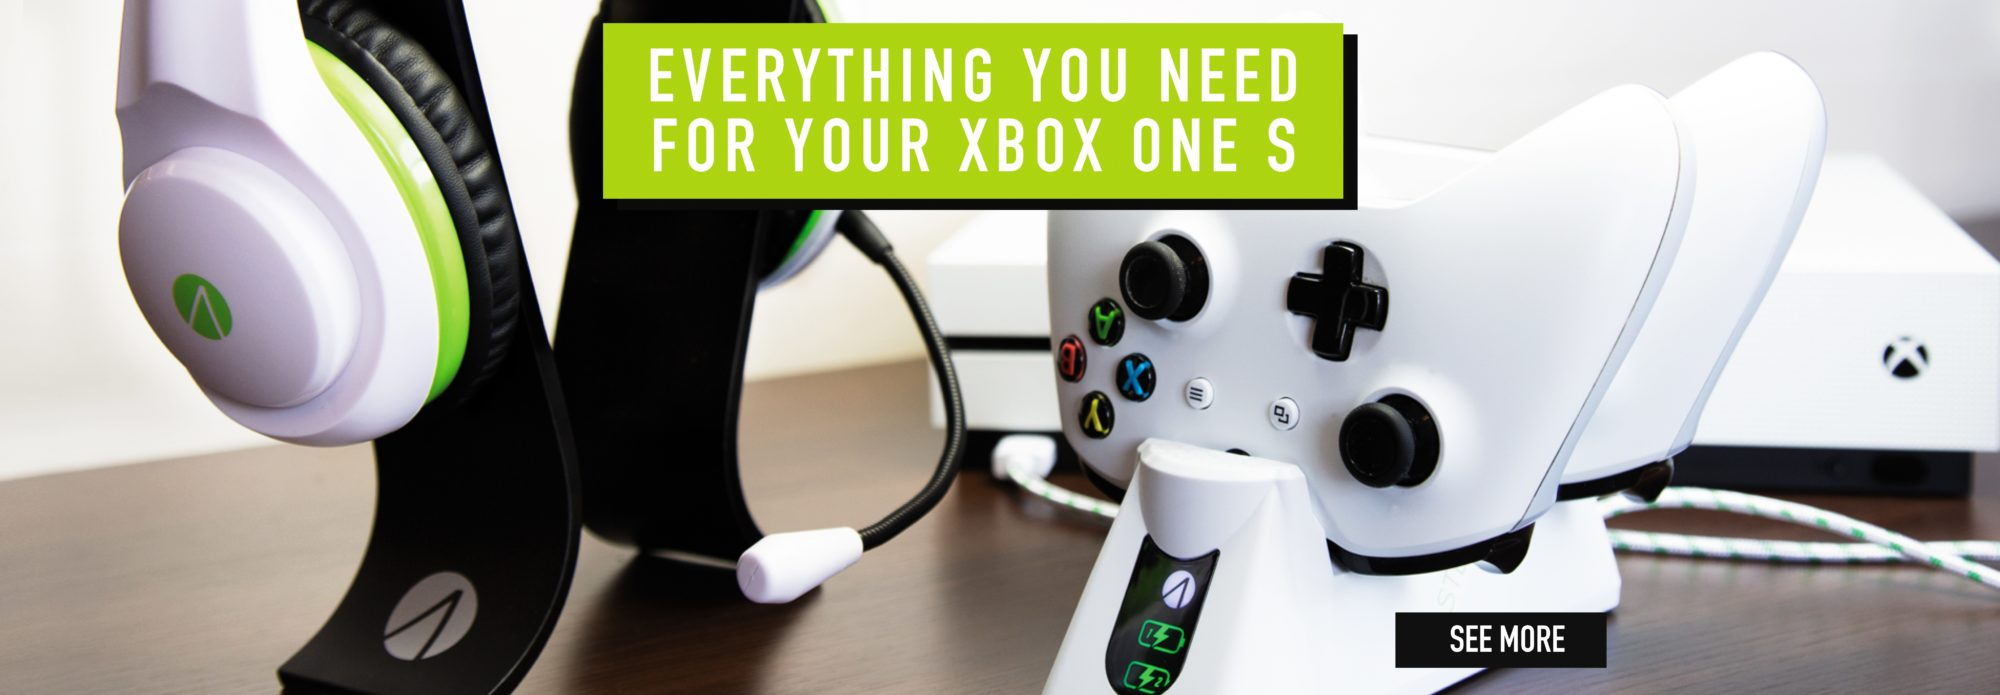 Xbox Charging Banner